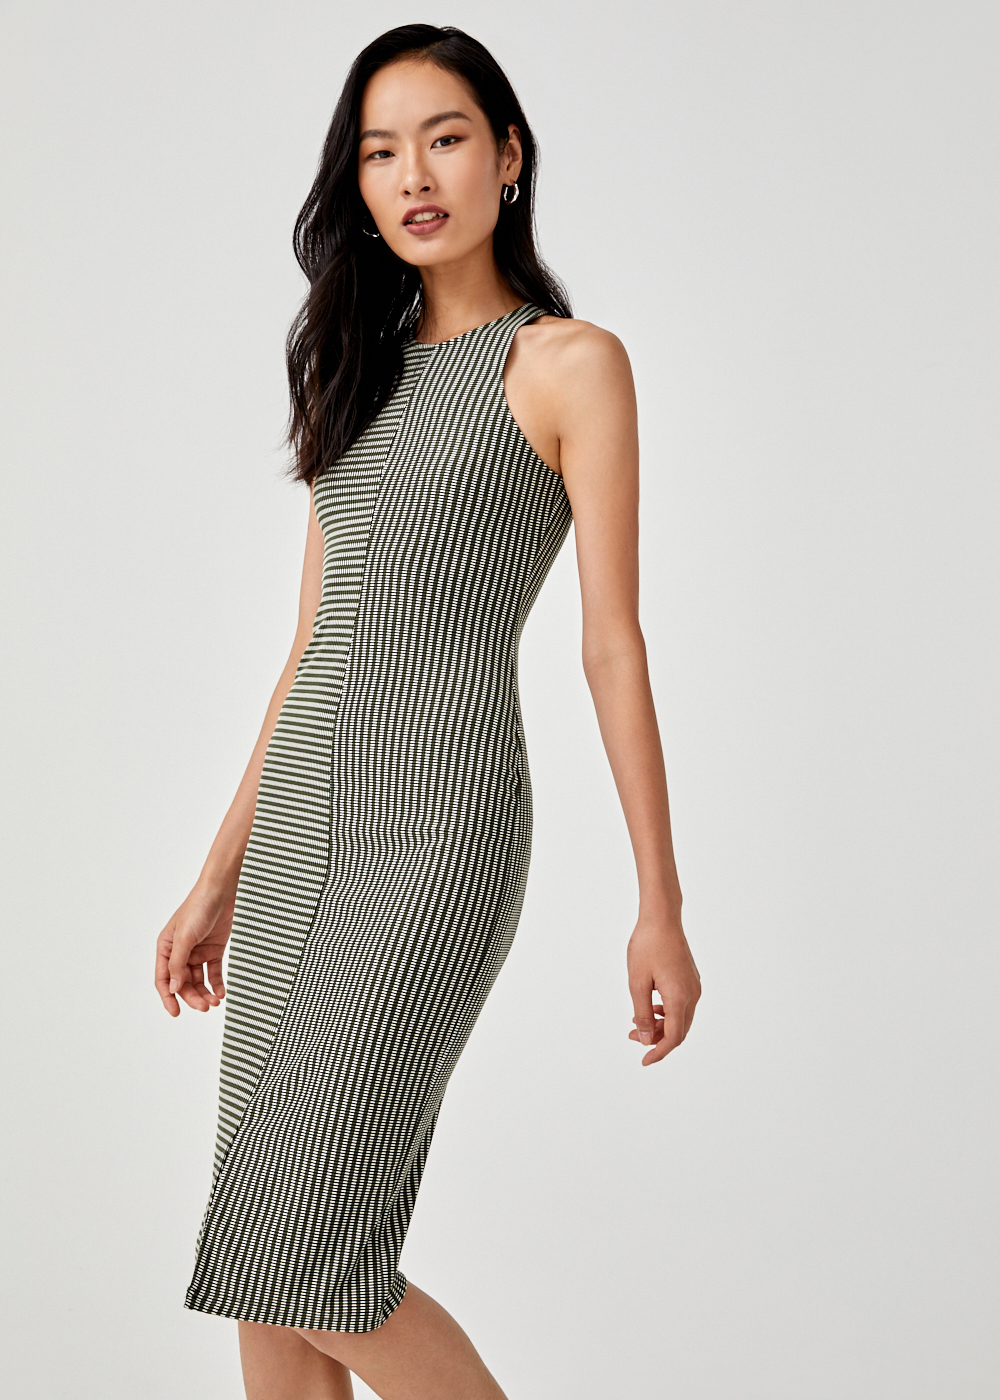 Suzetta Bodycon Midi Dress